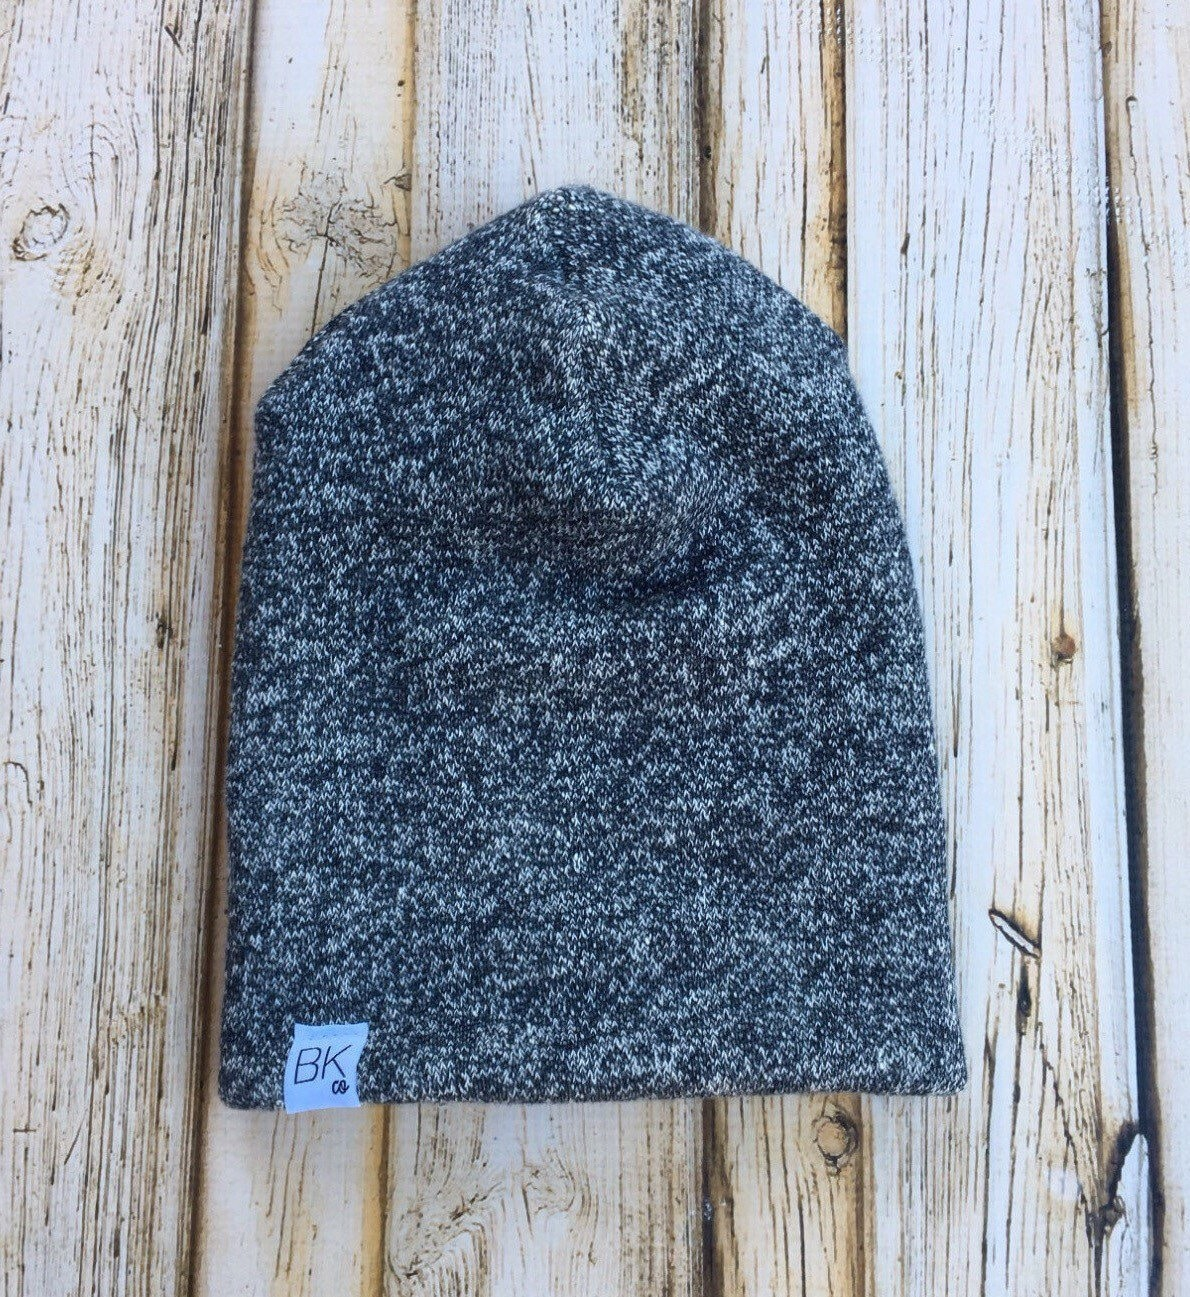 058b7b1c41c The All Canadian Slouch Beanie in a heathered Dark Navy